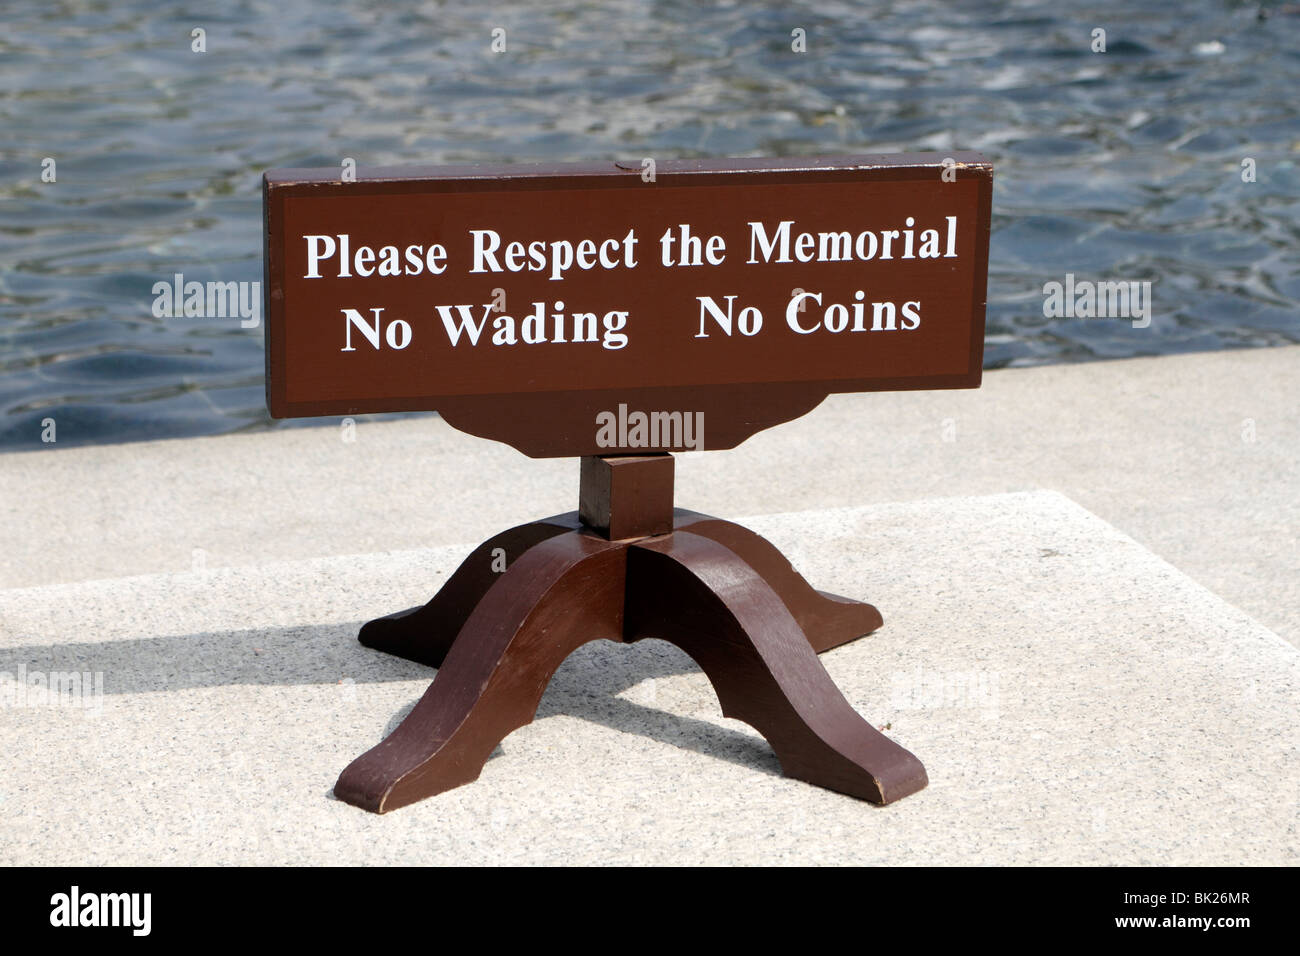 Please Respect the Memorial - No Wading No Coins Sign at World War II Memorial in Washington, DC - Stock Image